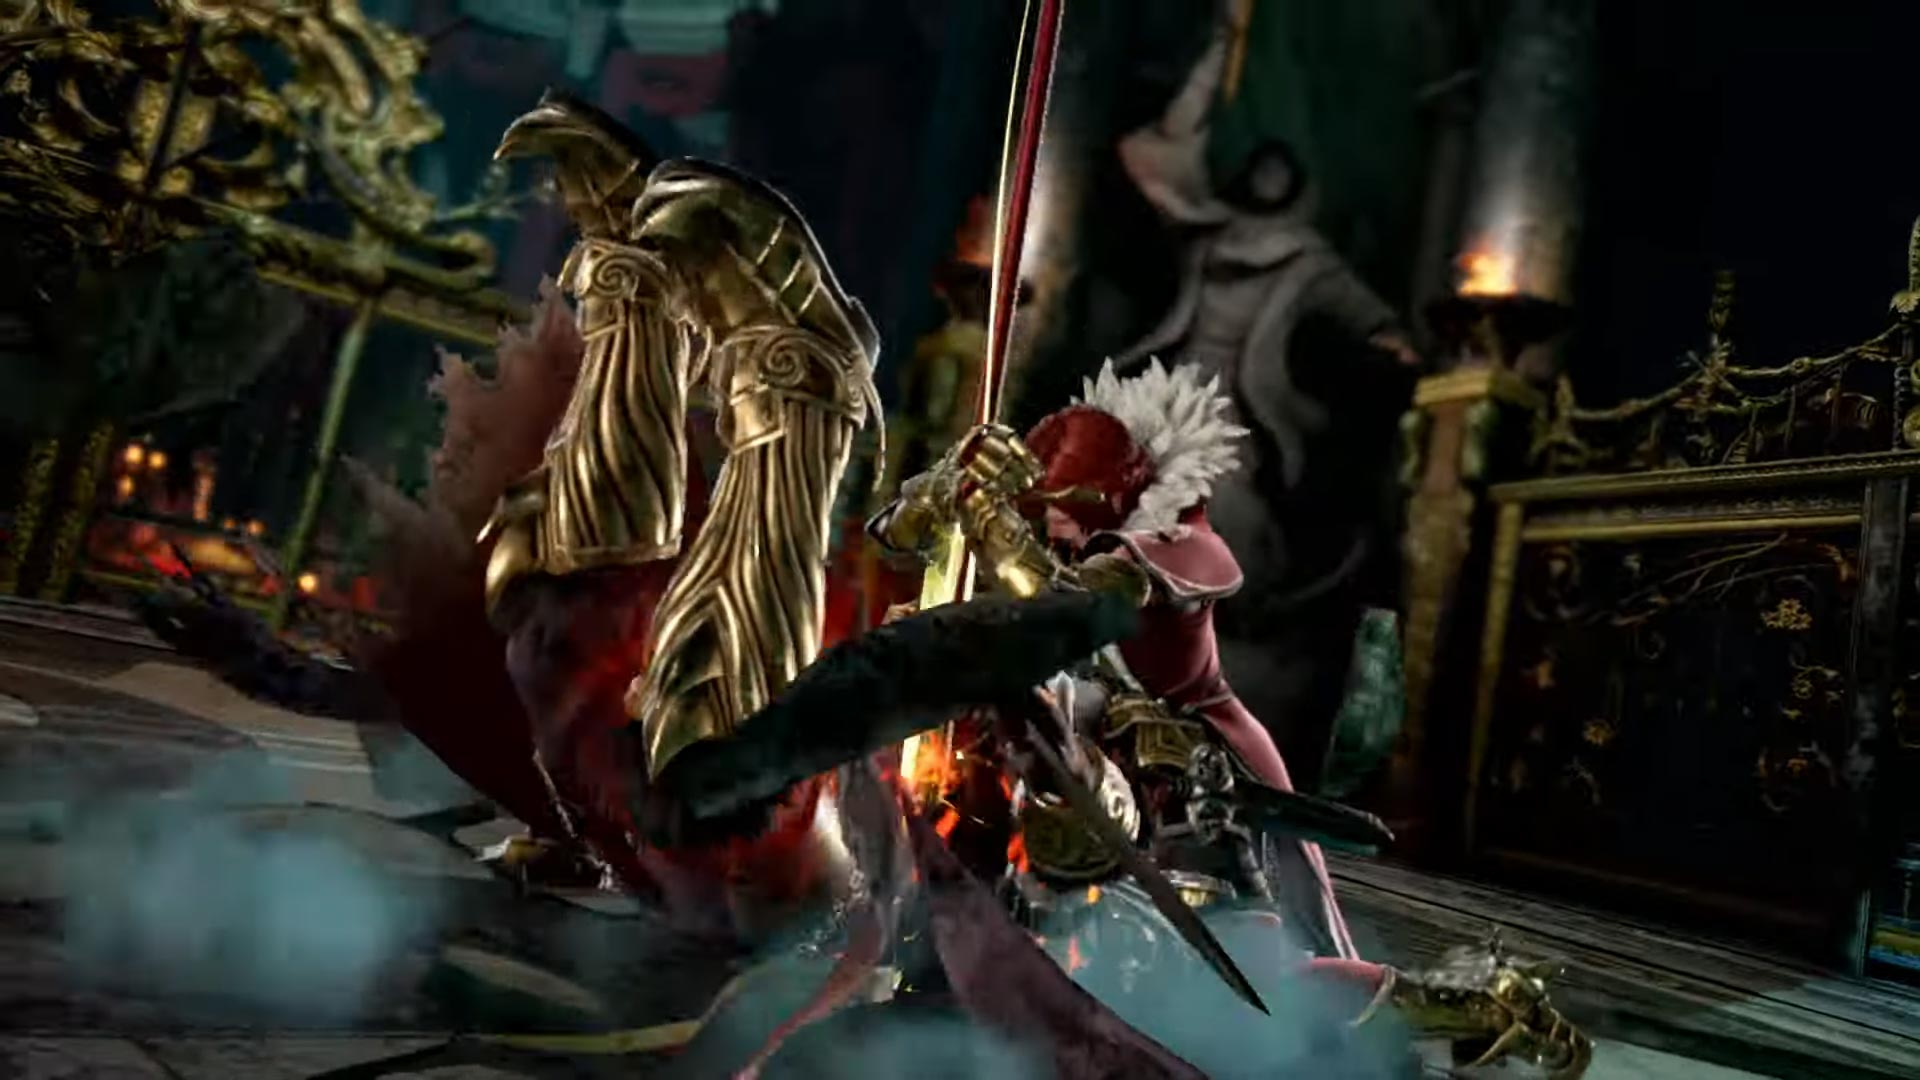 Soul Calibur 6 Hilde Reveal Trailer Gallery 5 out of 9 image gallery